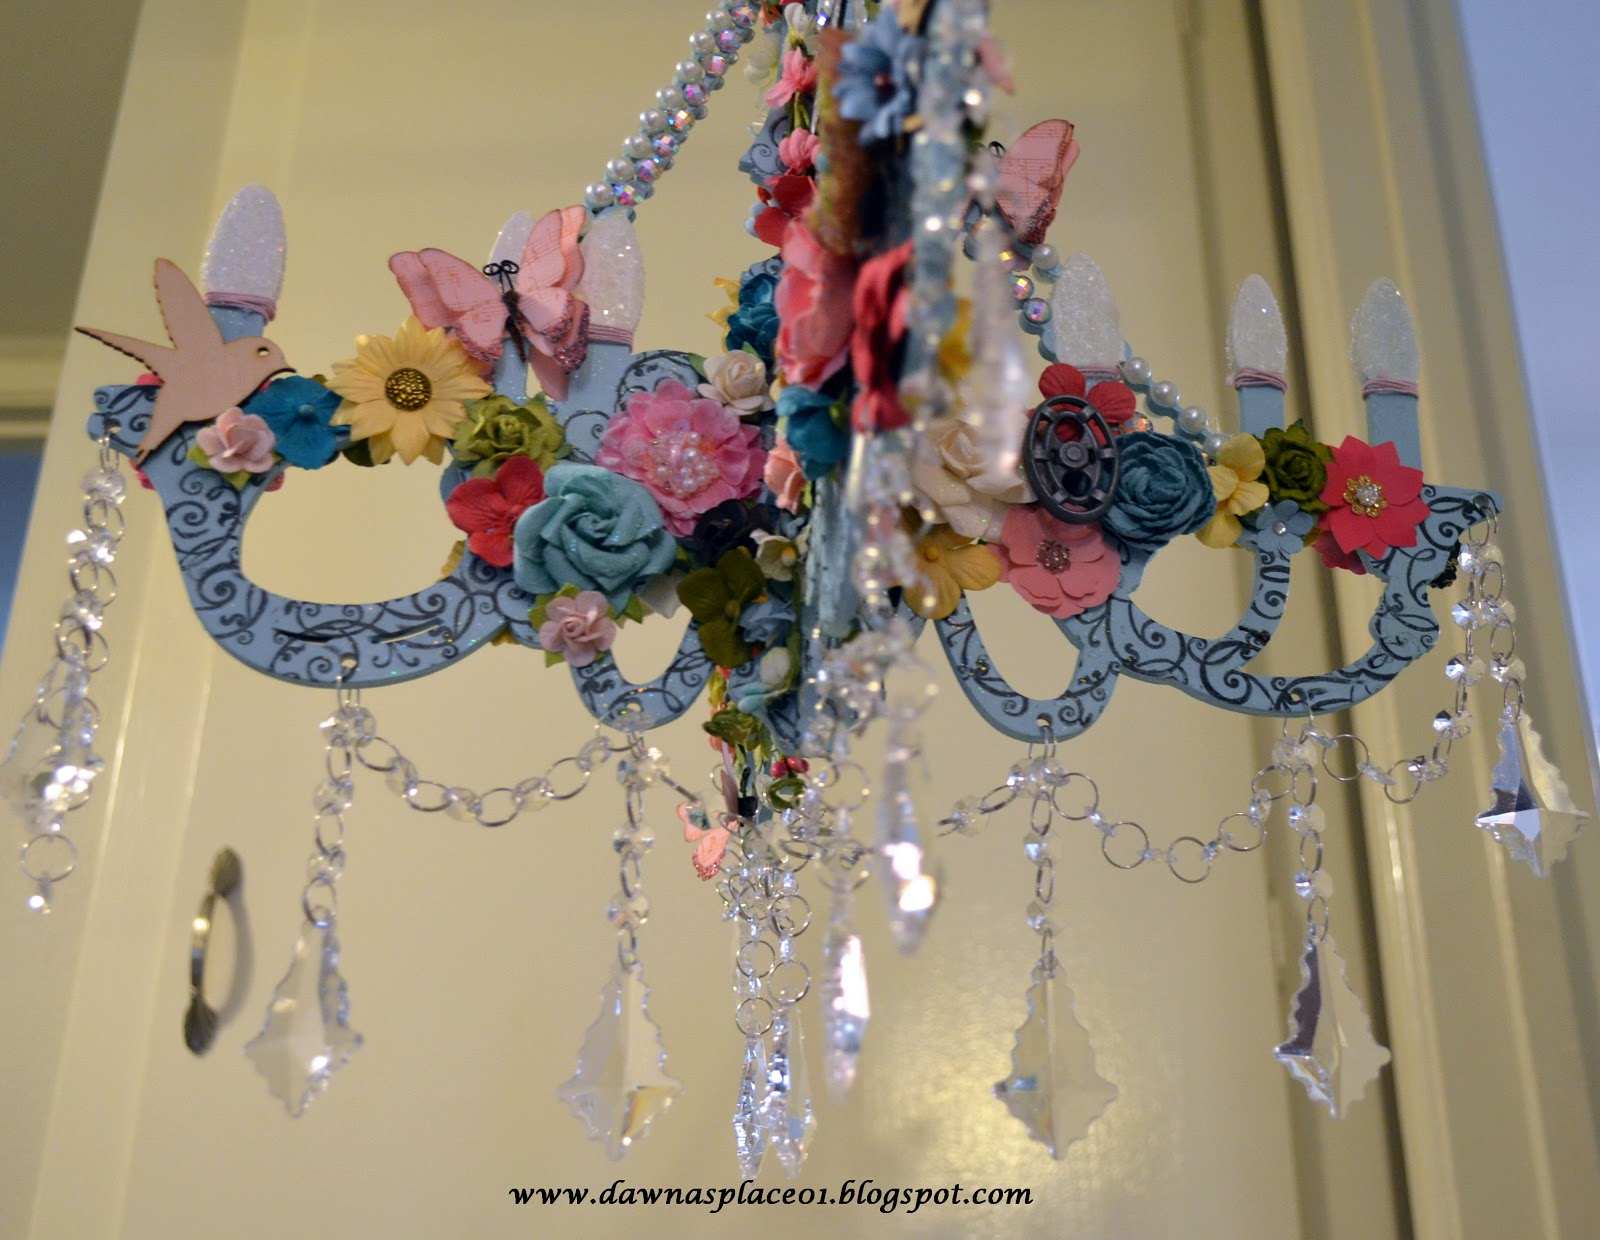 Dawnas place dream garden chandelier i decorated each section of the chandelier with flowers and garden themed trinkets like a blessed water spigot vintage garden hose knob birds nest arubaitofo Gallery